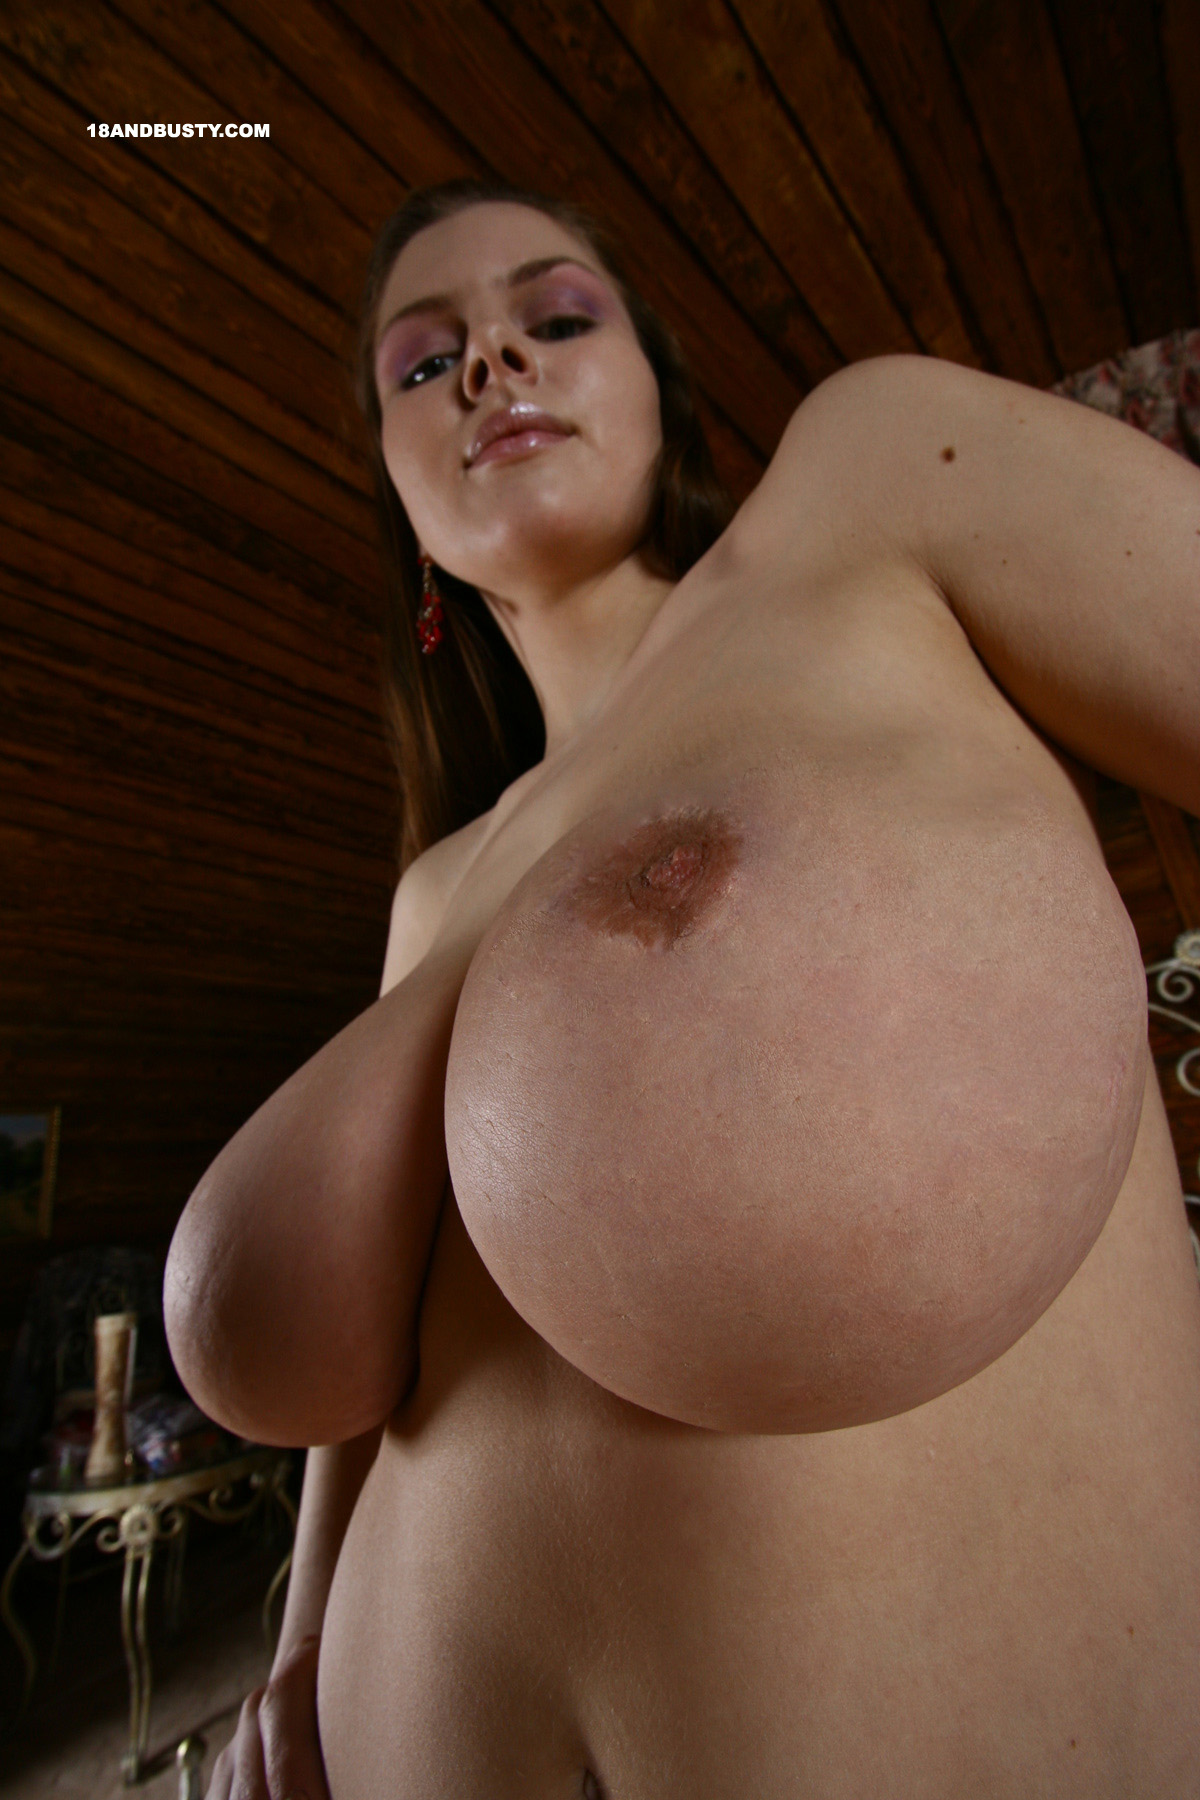 Agree big maggie boobs bliss impudence! You